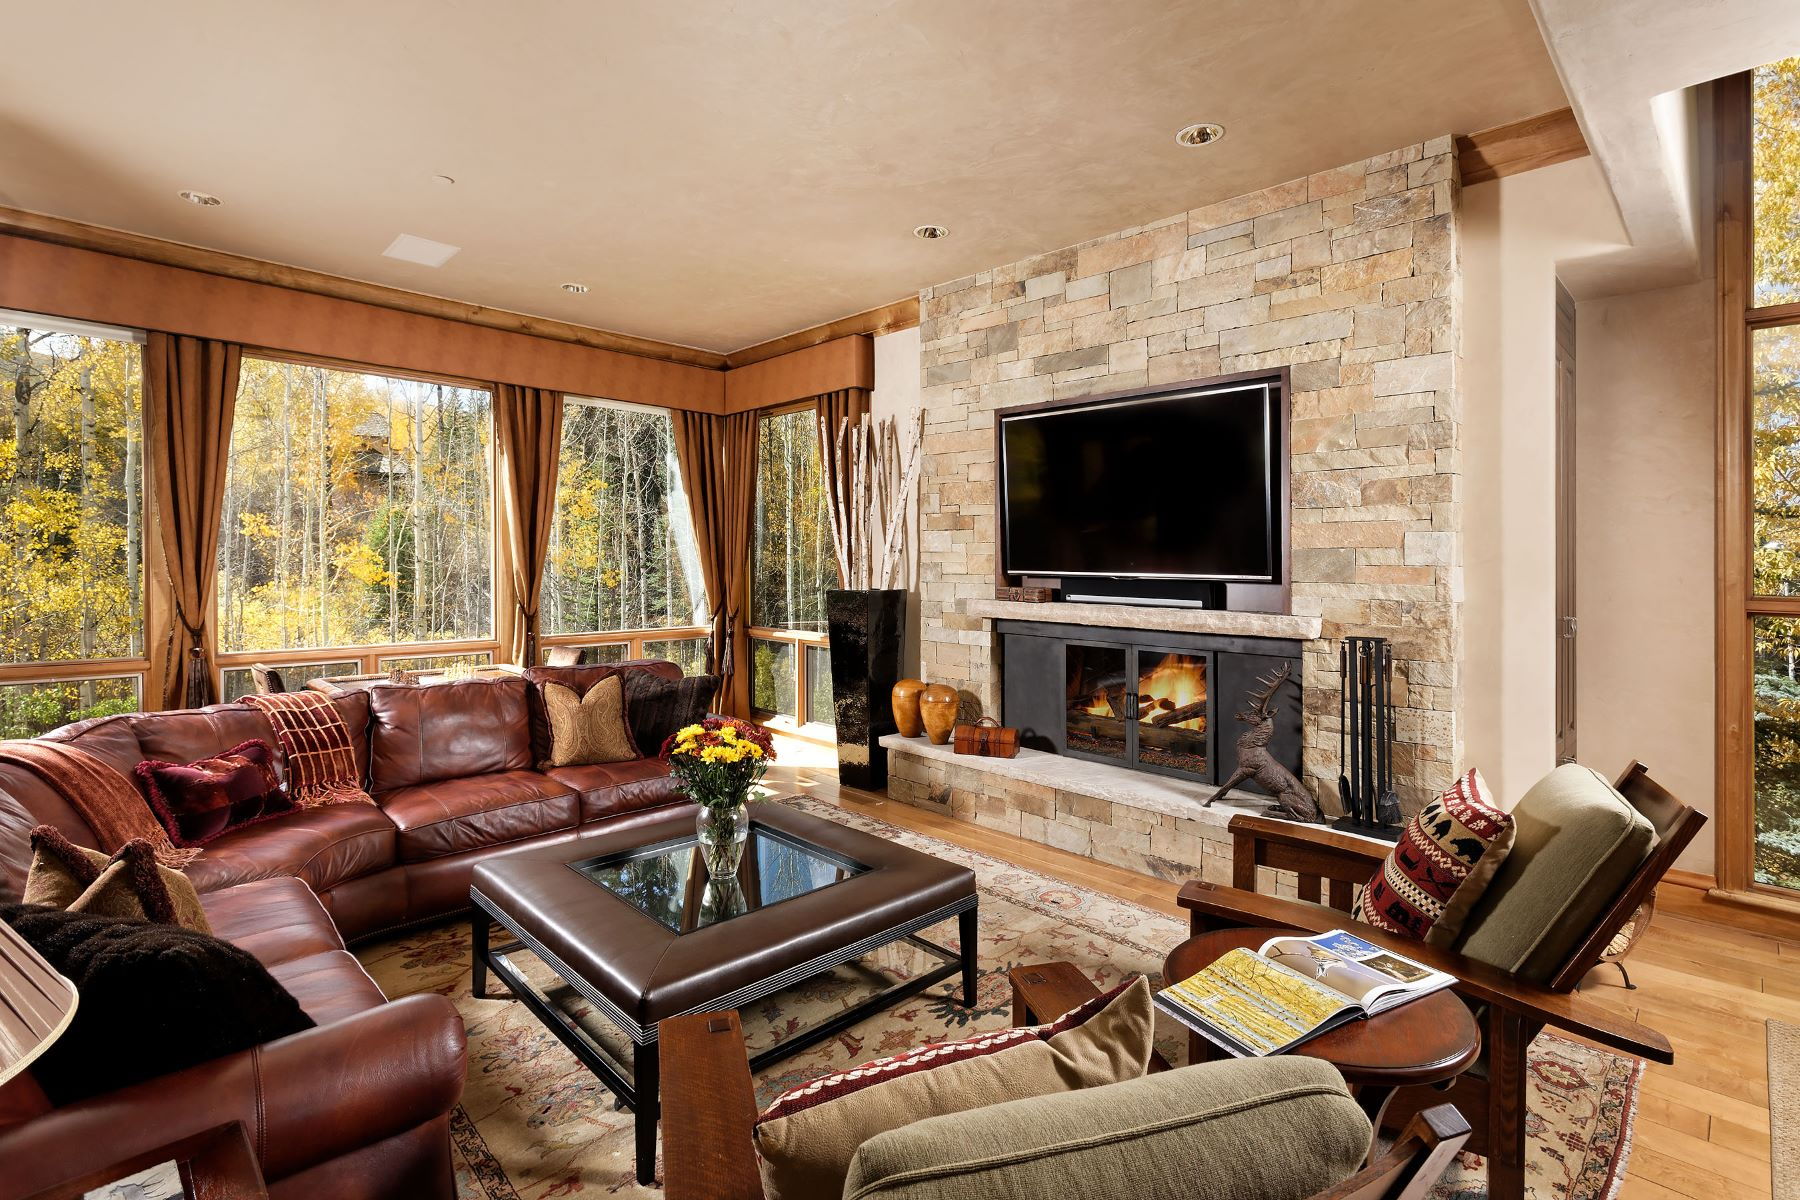 Additional photo for property listing at Ski In-Ski Out Owl Creek Town home 610 Streamside Court 31 Snowmass Village, Colorado 81615 United States